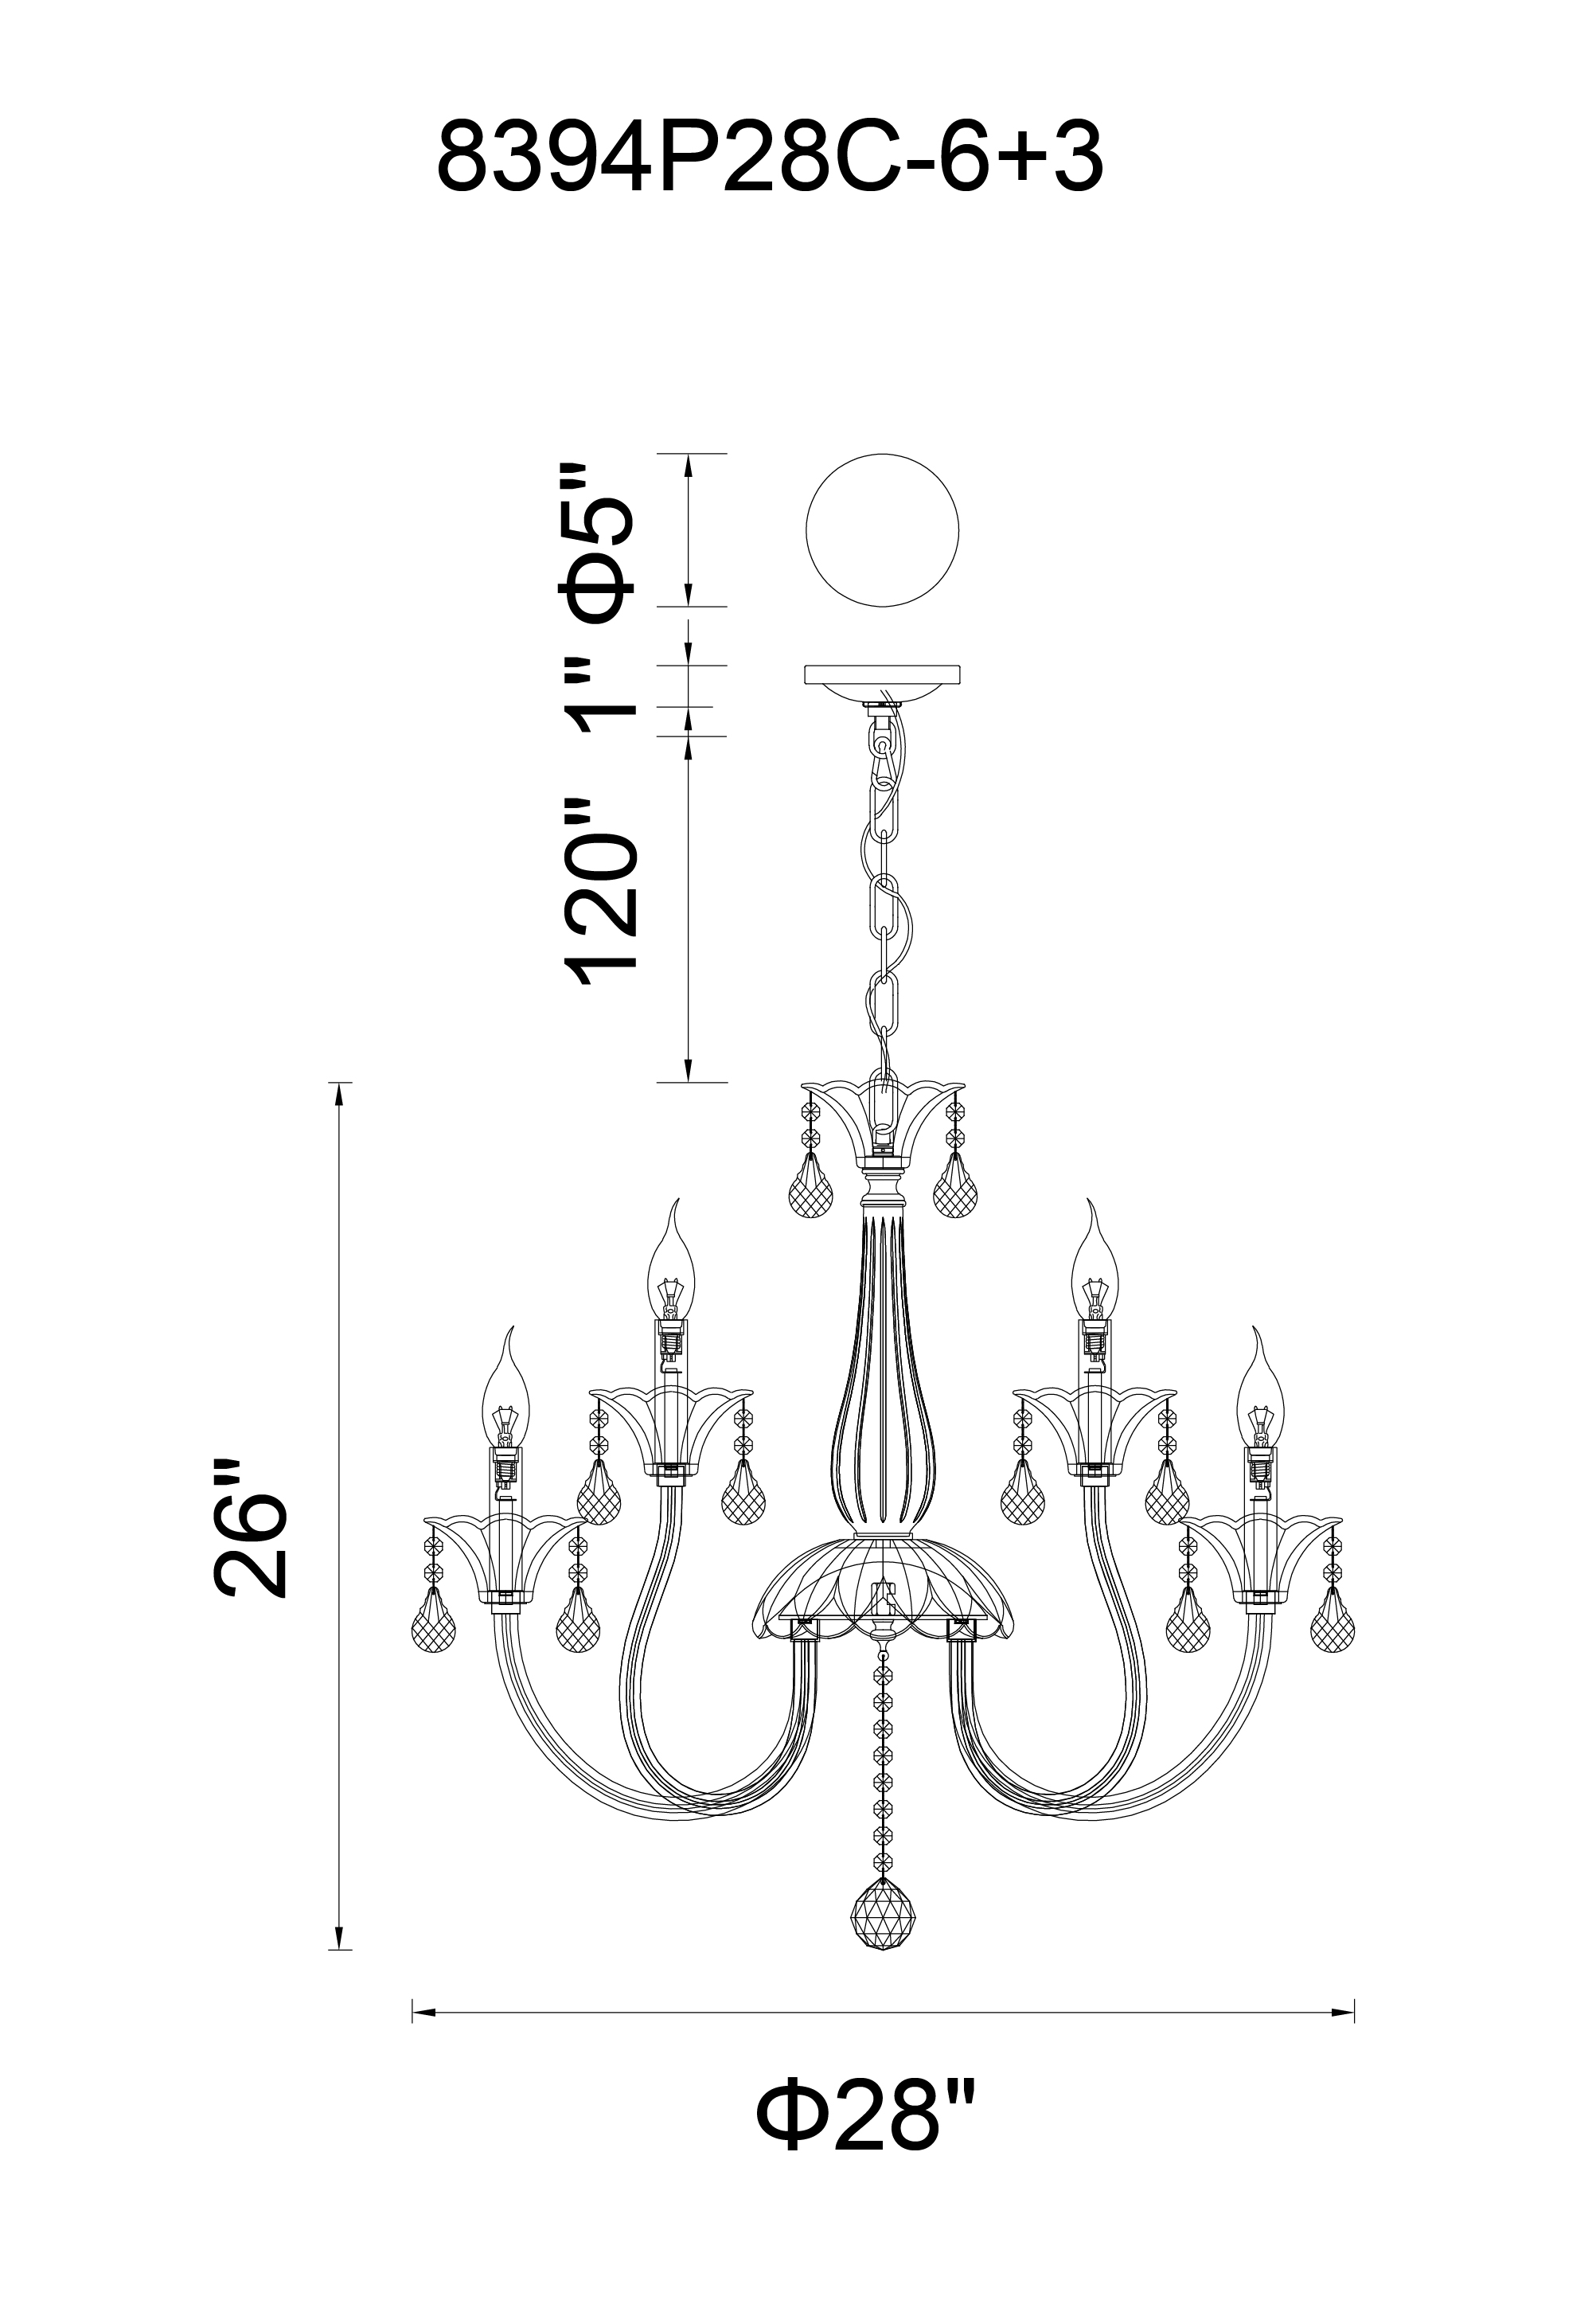 CWI Lighting Melanie 9 Light Up Chandelier With Chrome Finish Model: 8394P28C-9 Line Drawing